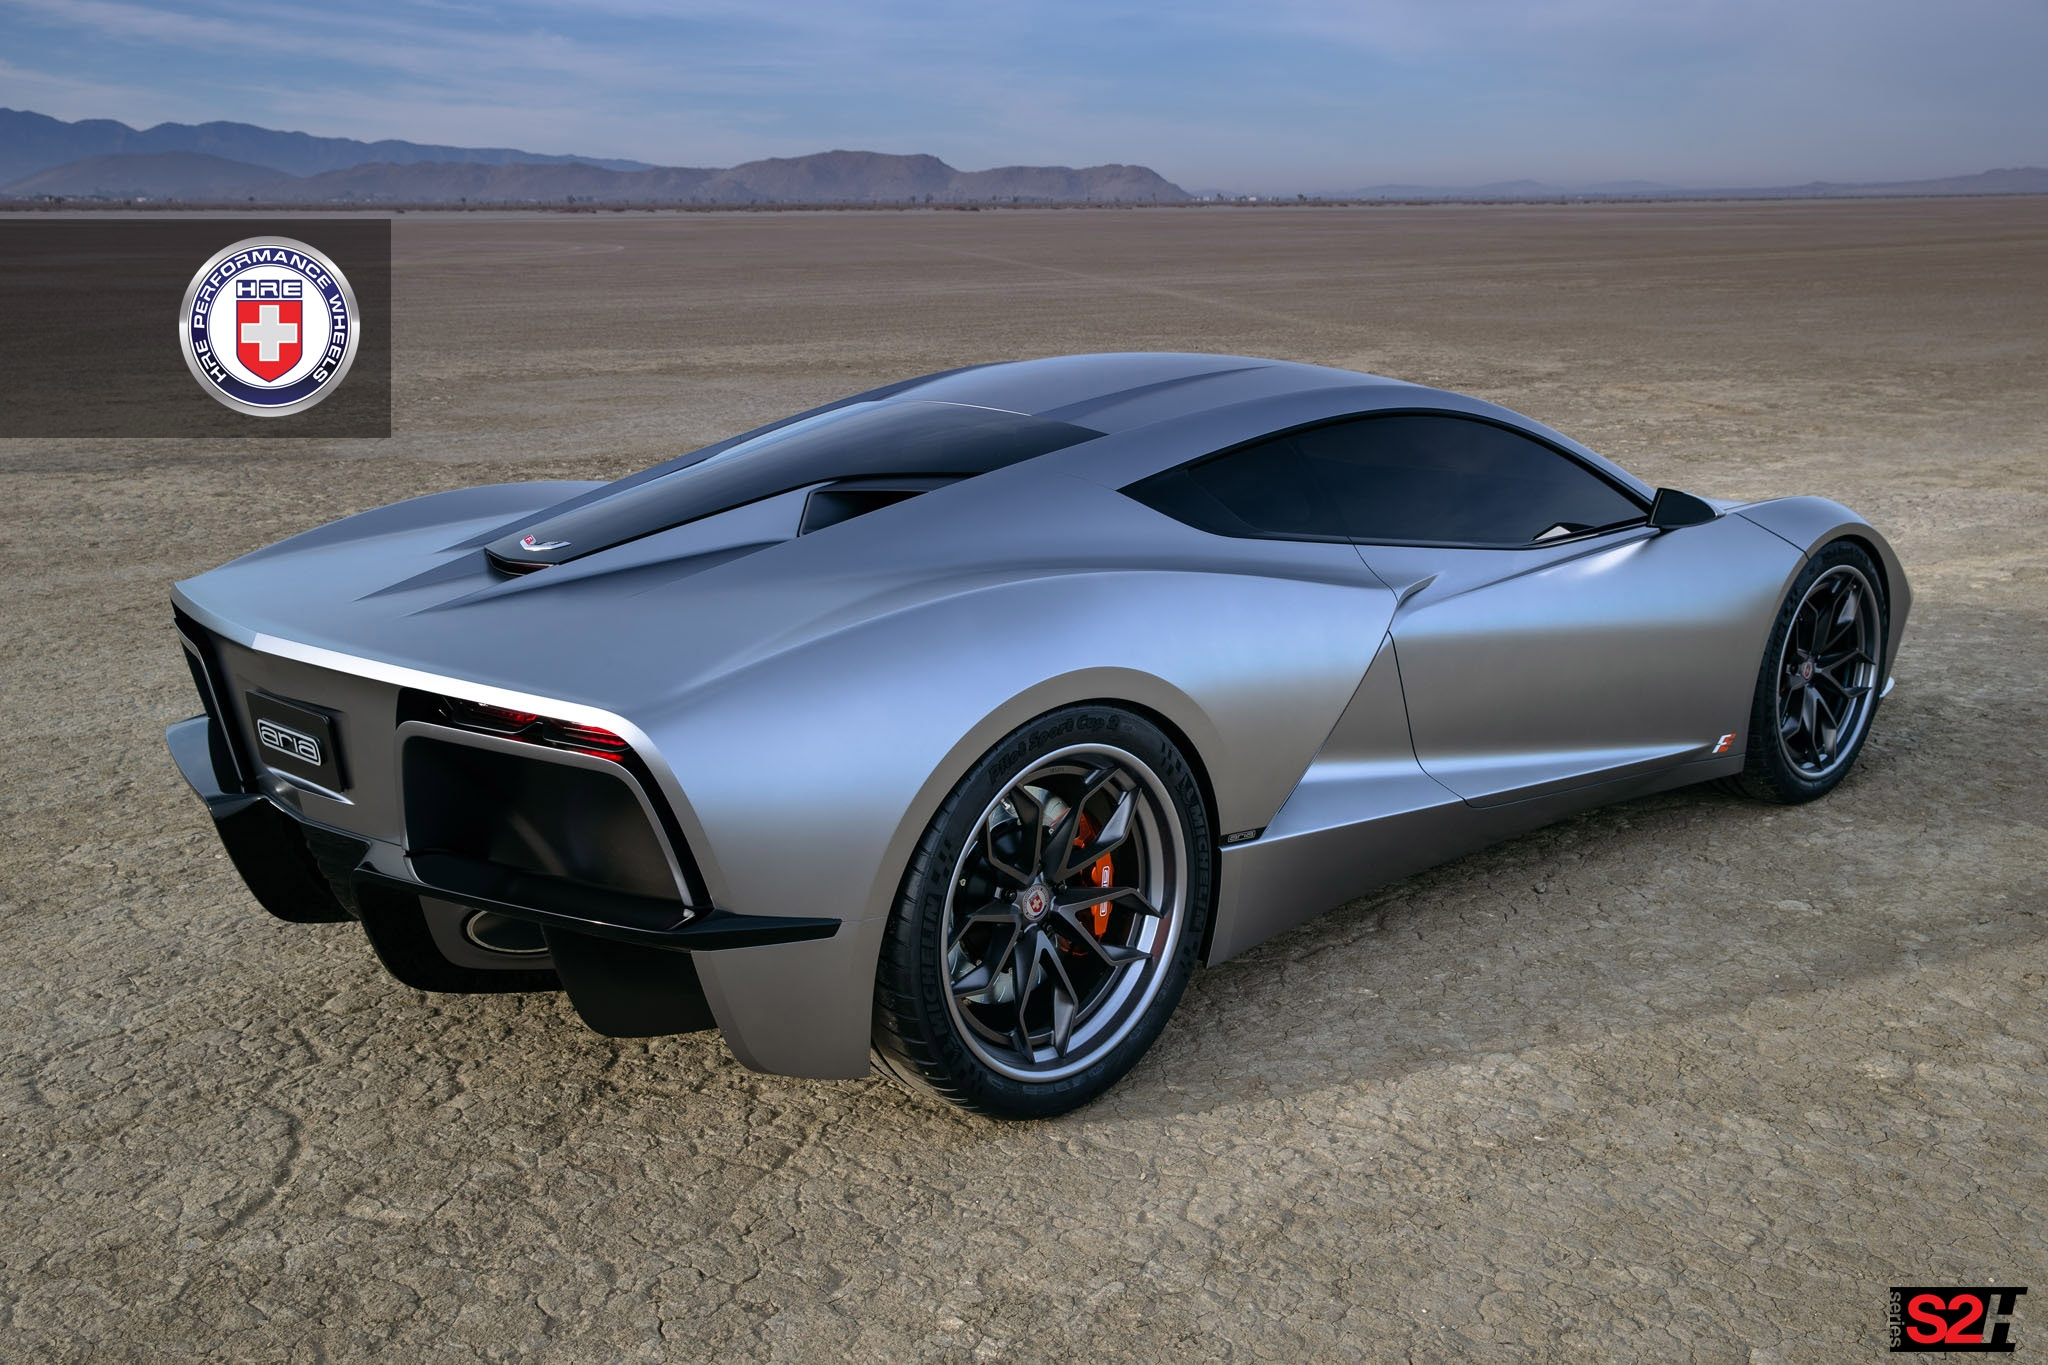 Mid Engined Corvette Quot Fast Eddy Quot Shows Hre Wheels In The